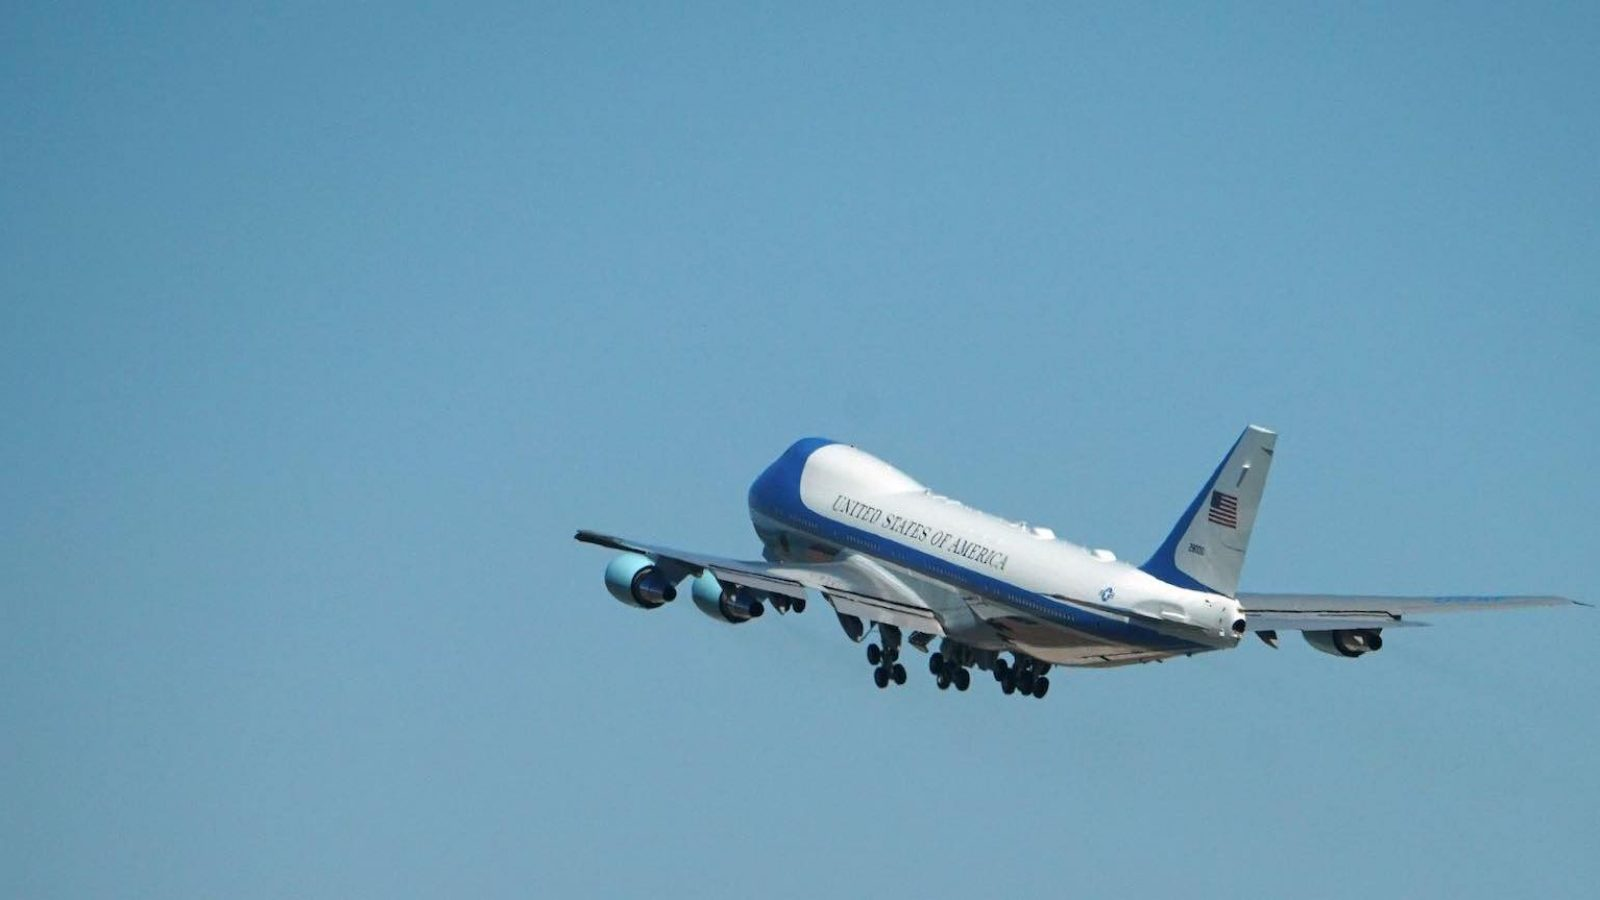 Air Force One takes off on a clear day